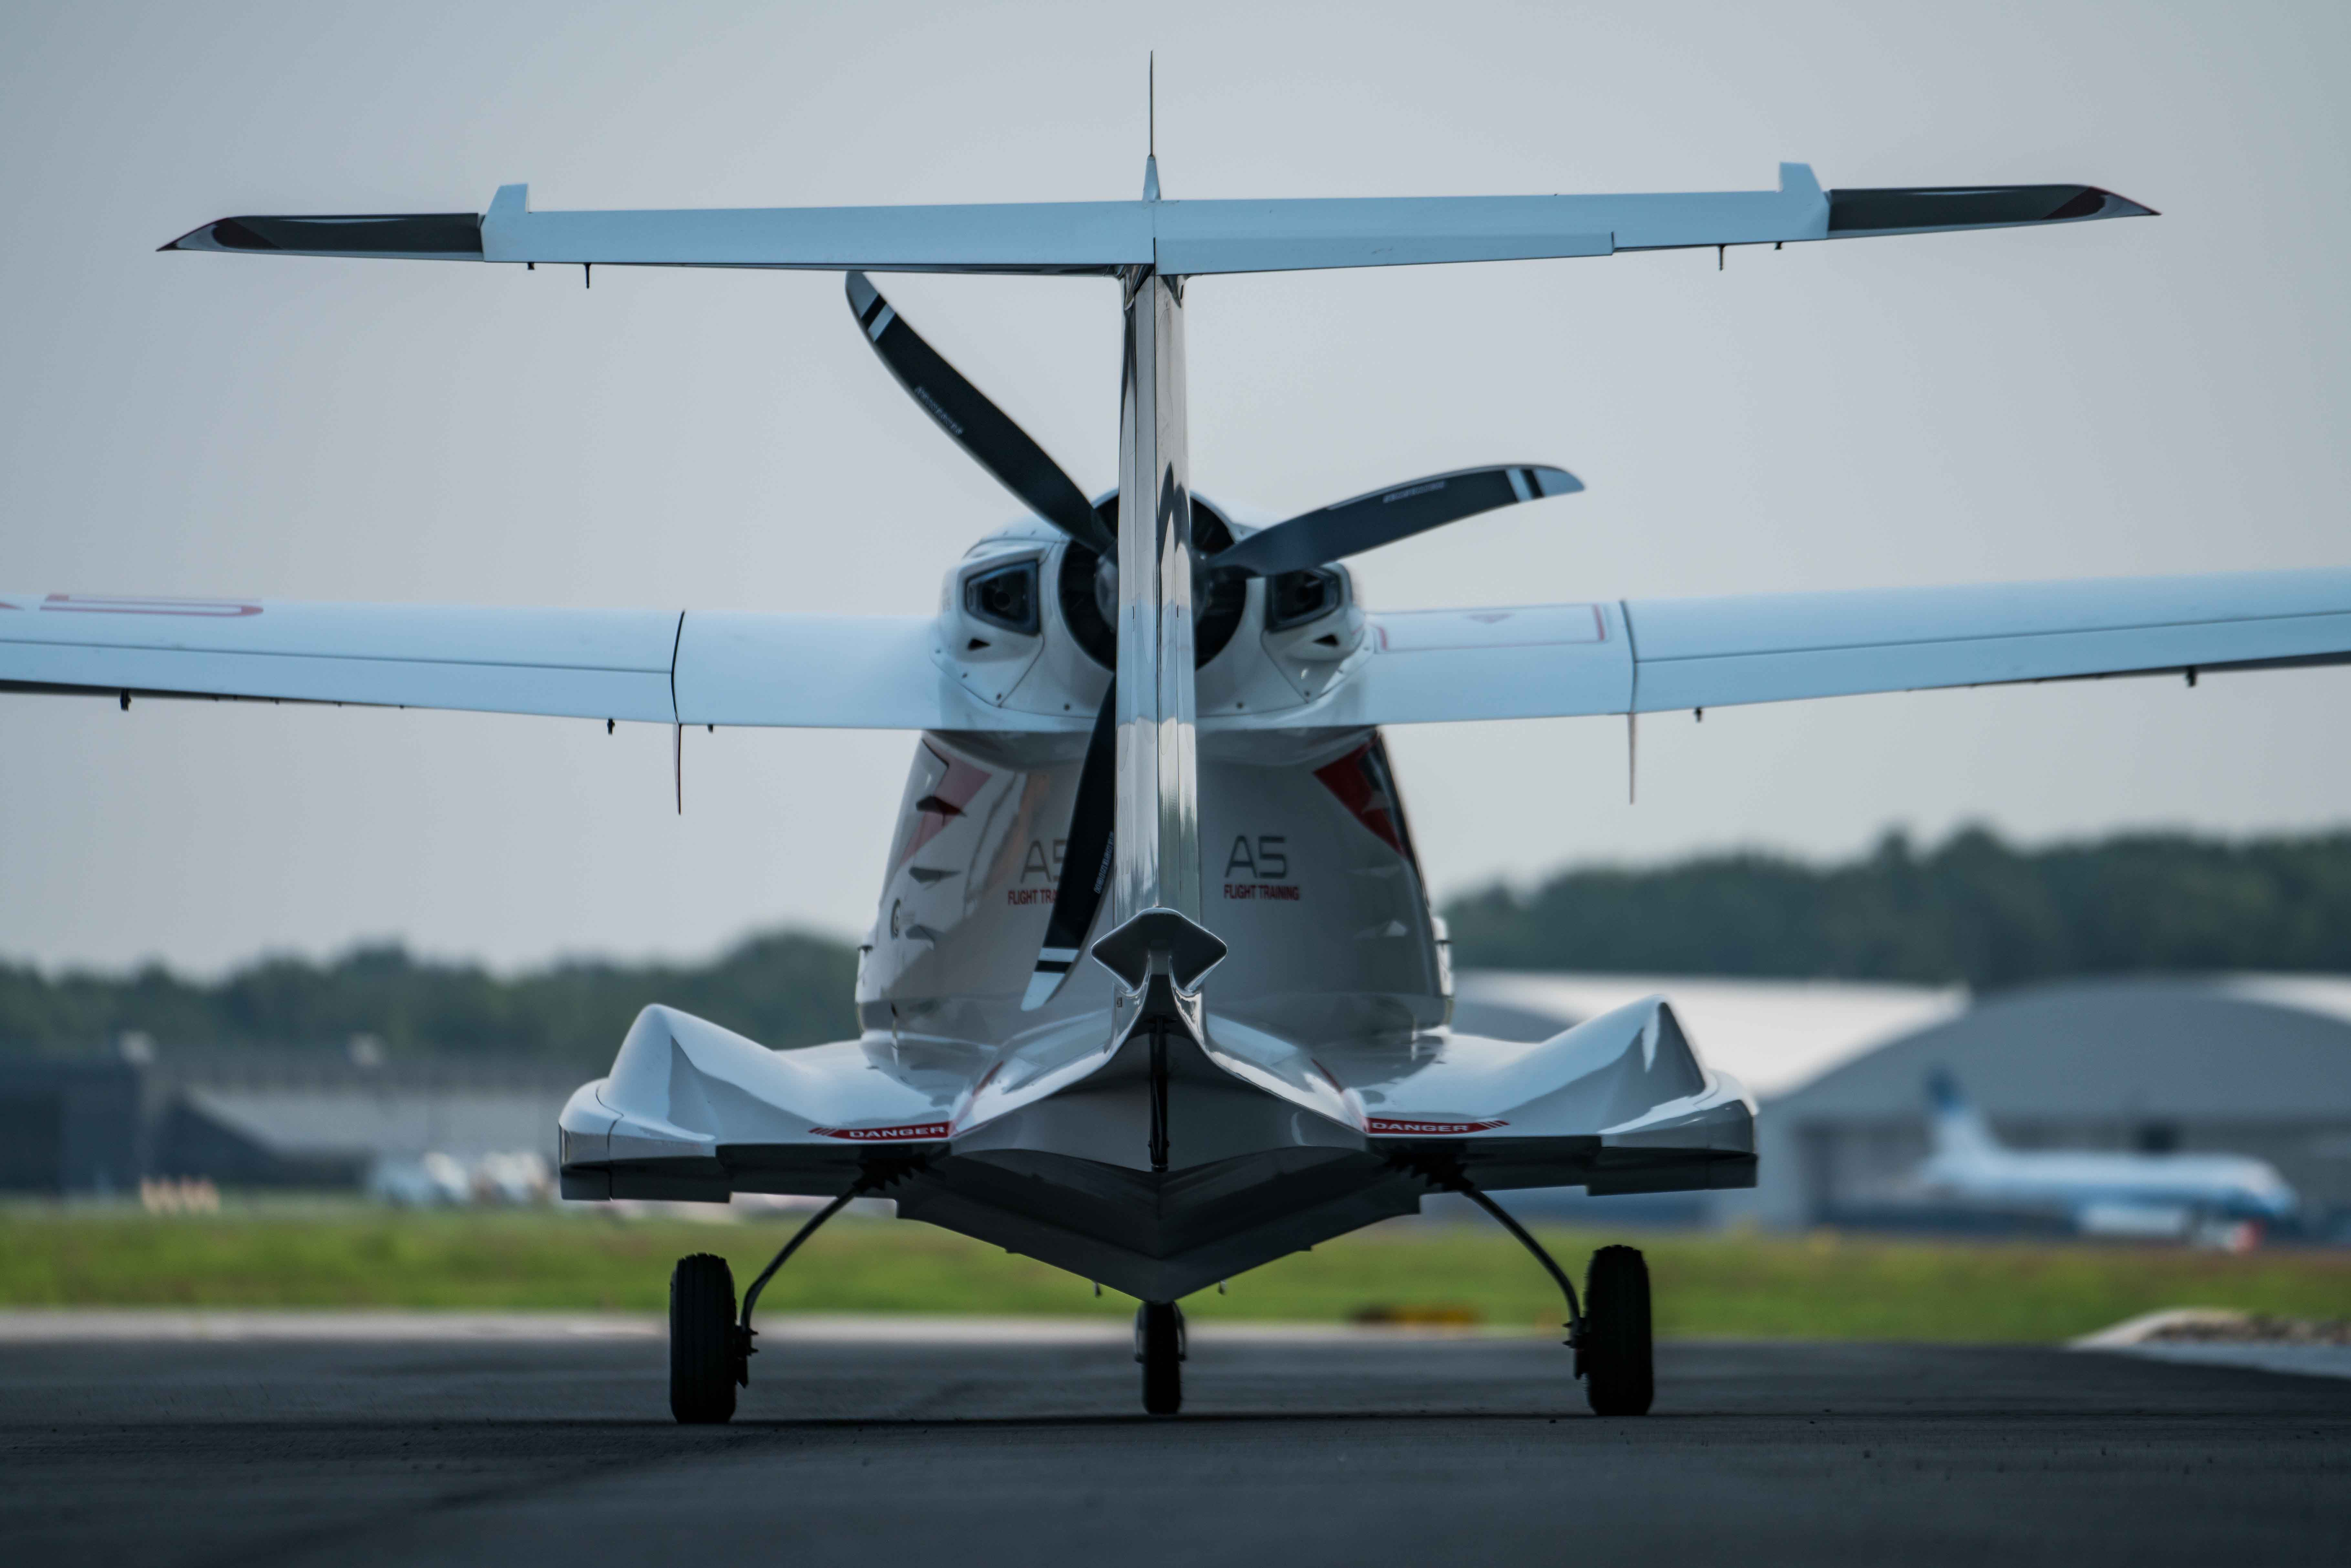 Icon A5 Aircraft Test Flight: Flying Into What the Future of